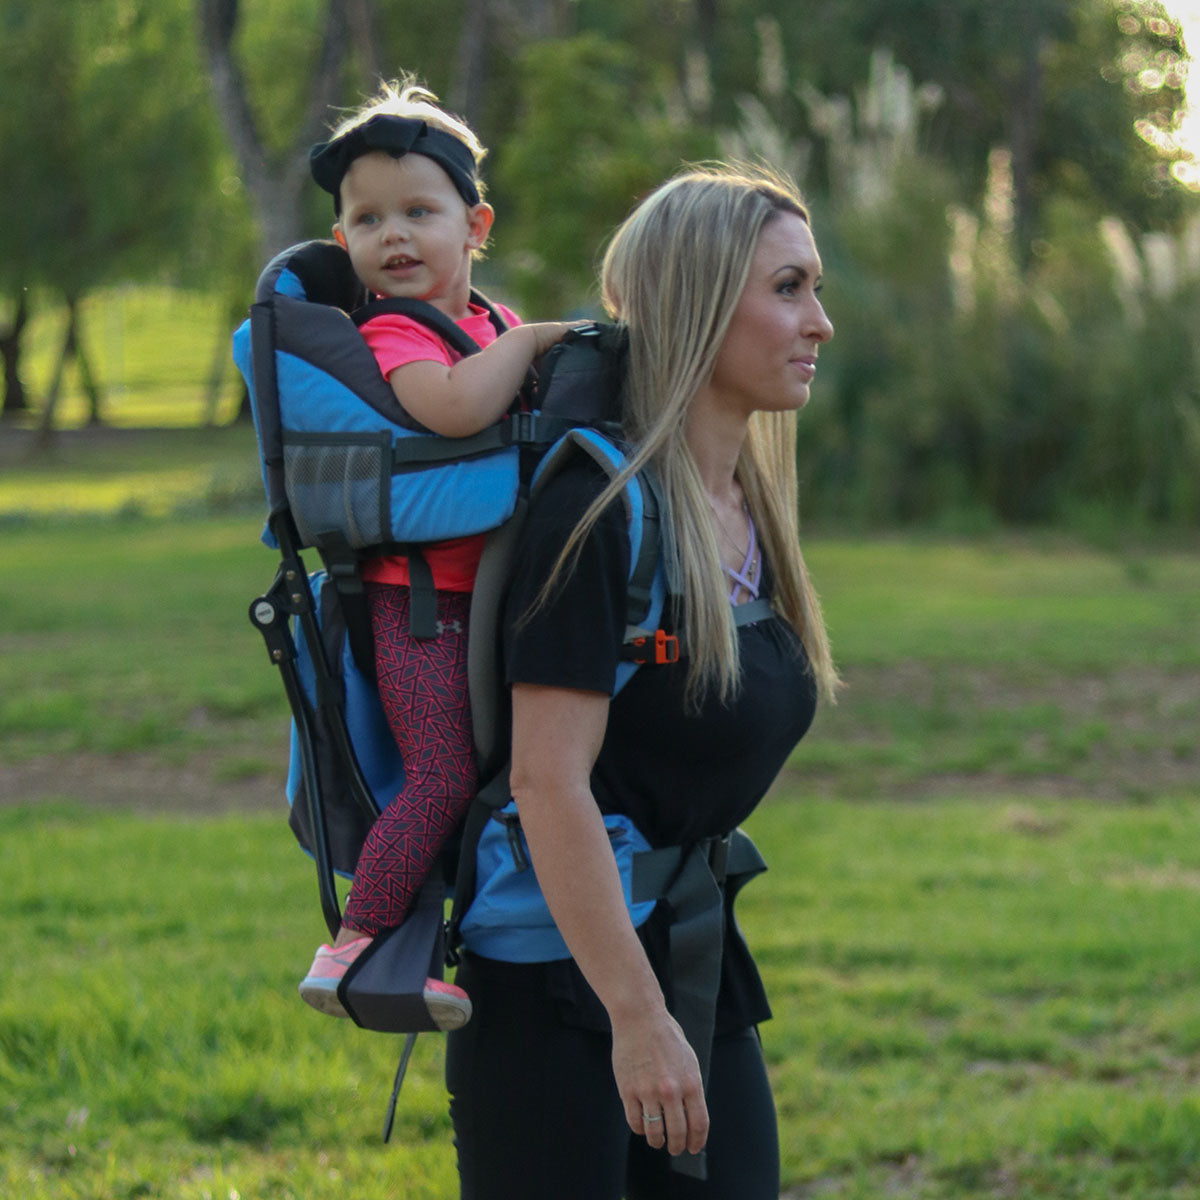 e5e6bef1d0f Canyonero Baby Backpack Cross Country Child Carrier